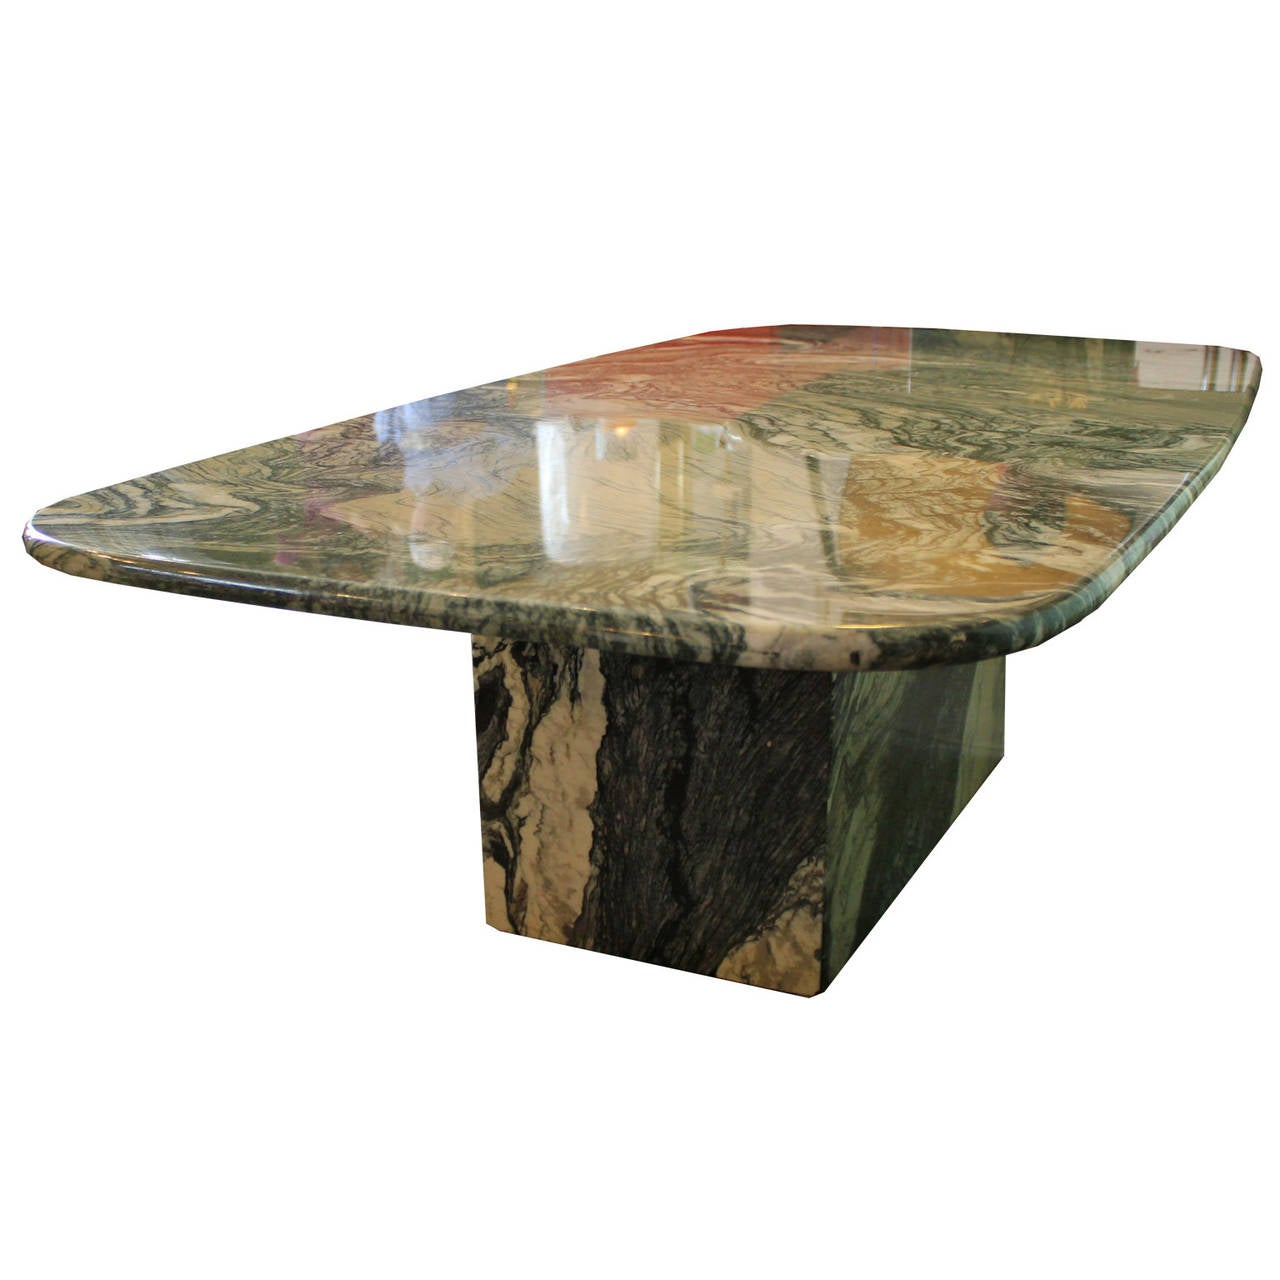 Striking green and white marble coffee table at 1stdibs Granite coffee table